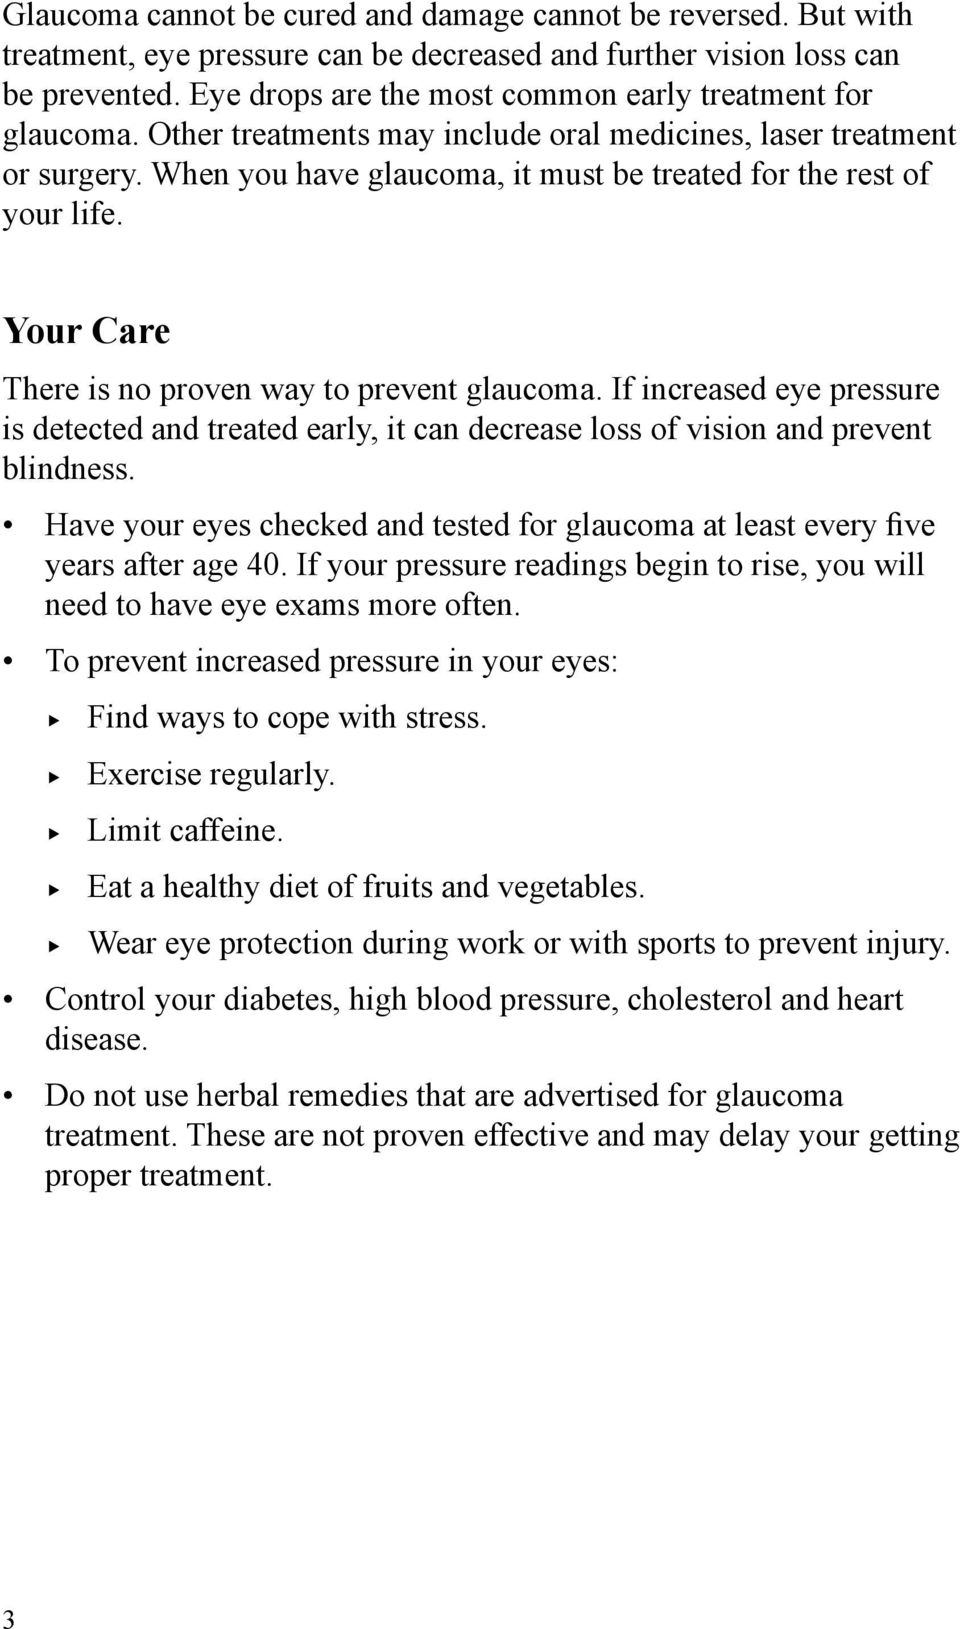 When you have glaucoma, it must be treated for the rest of your life. Your Care There is no proven way to prevent glaucoma.